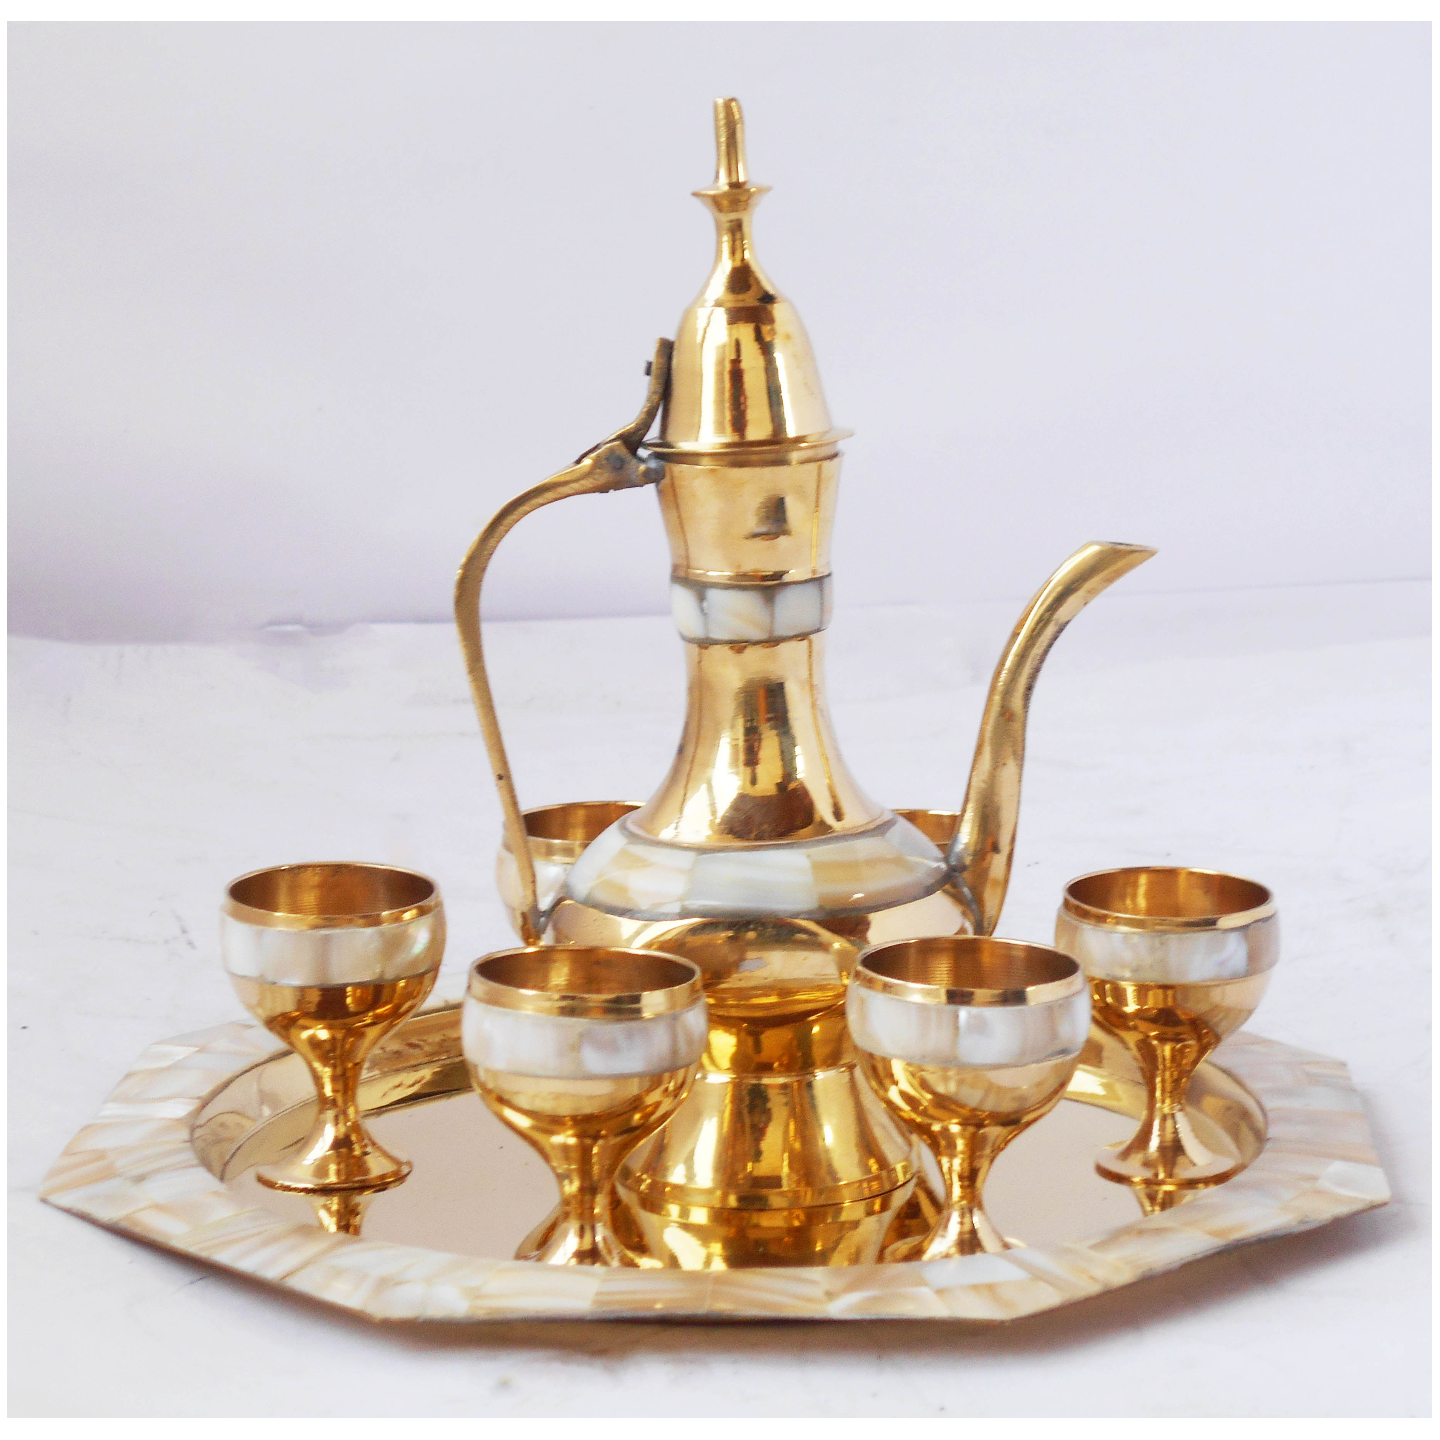 Brass Wine Set With Seep Work 6 Glass 1 Surahi 1 Tray Miniature Toy For Children Playing(Z363 D)